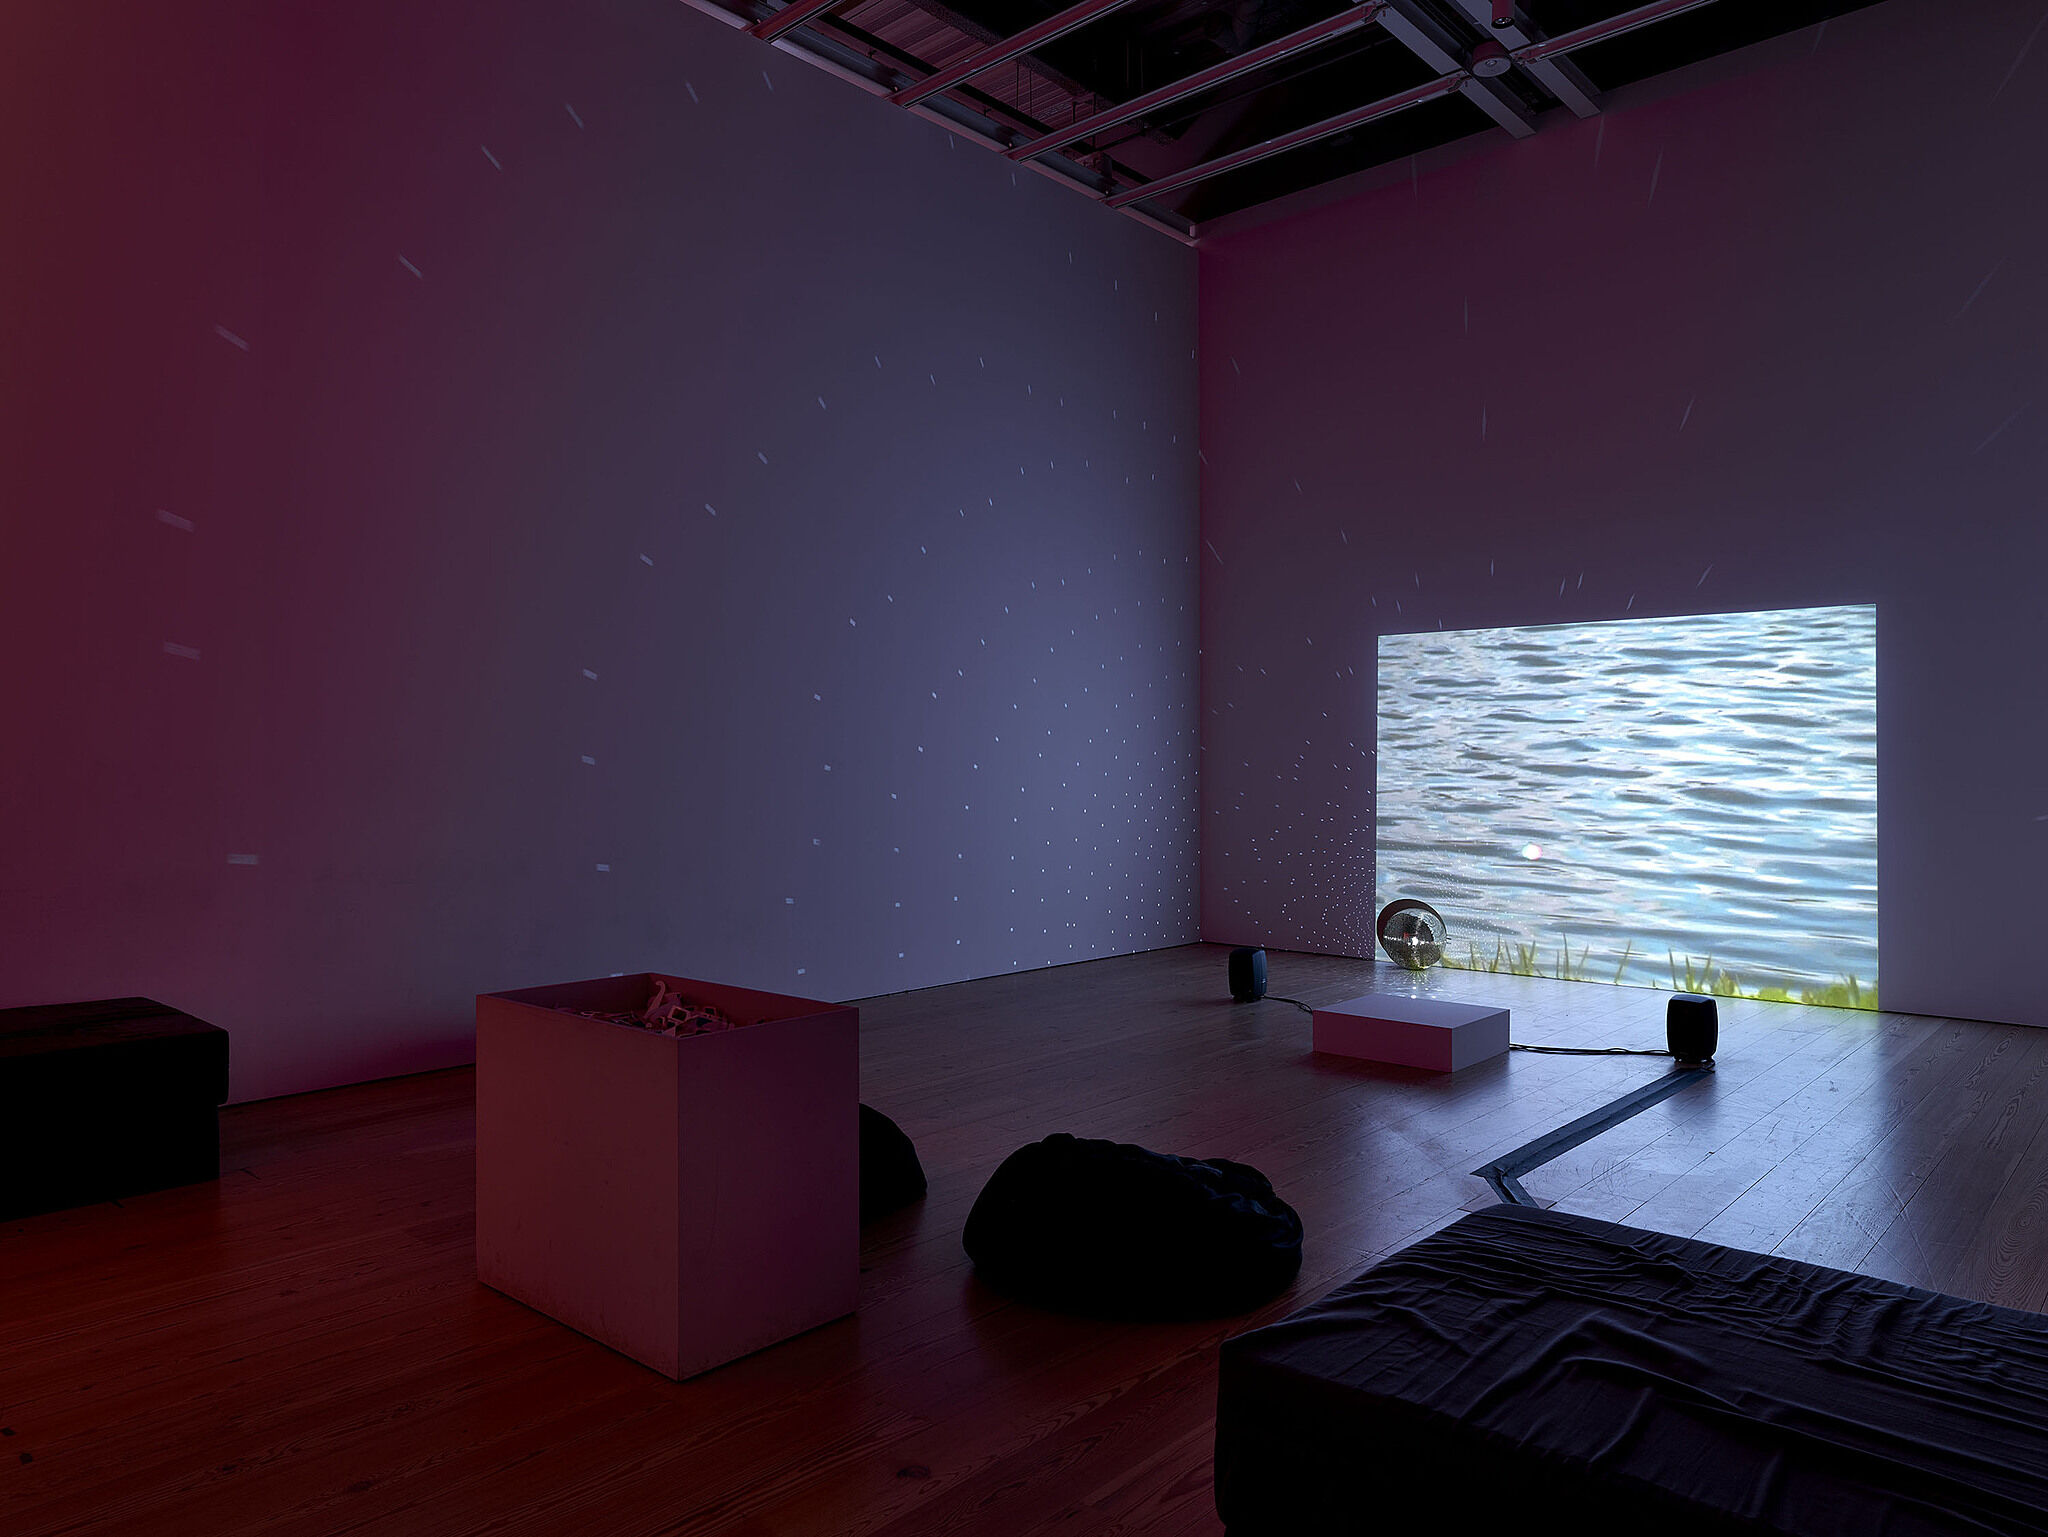 A video installation showing a body of water.